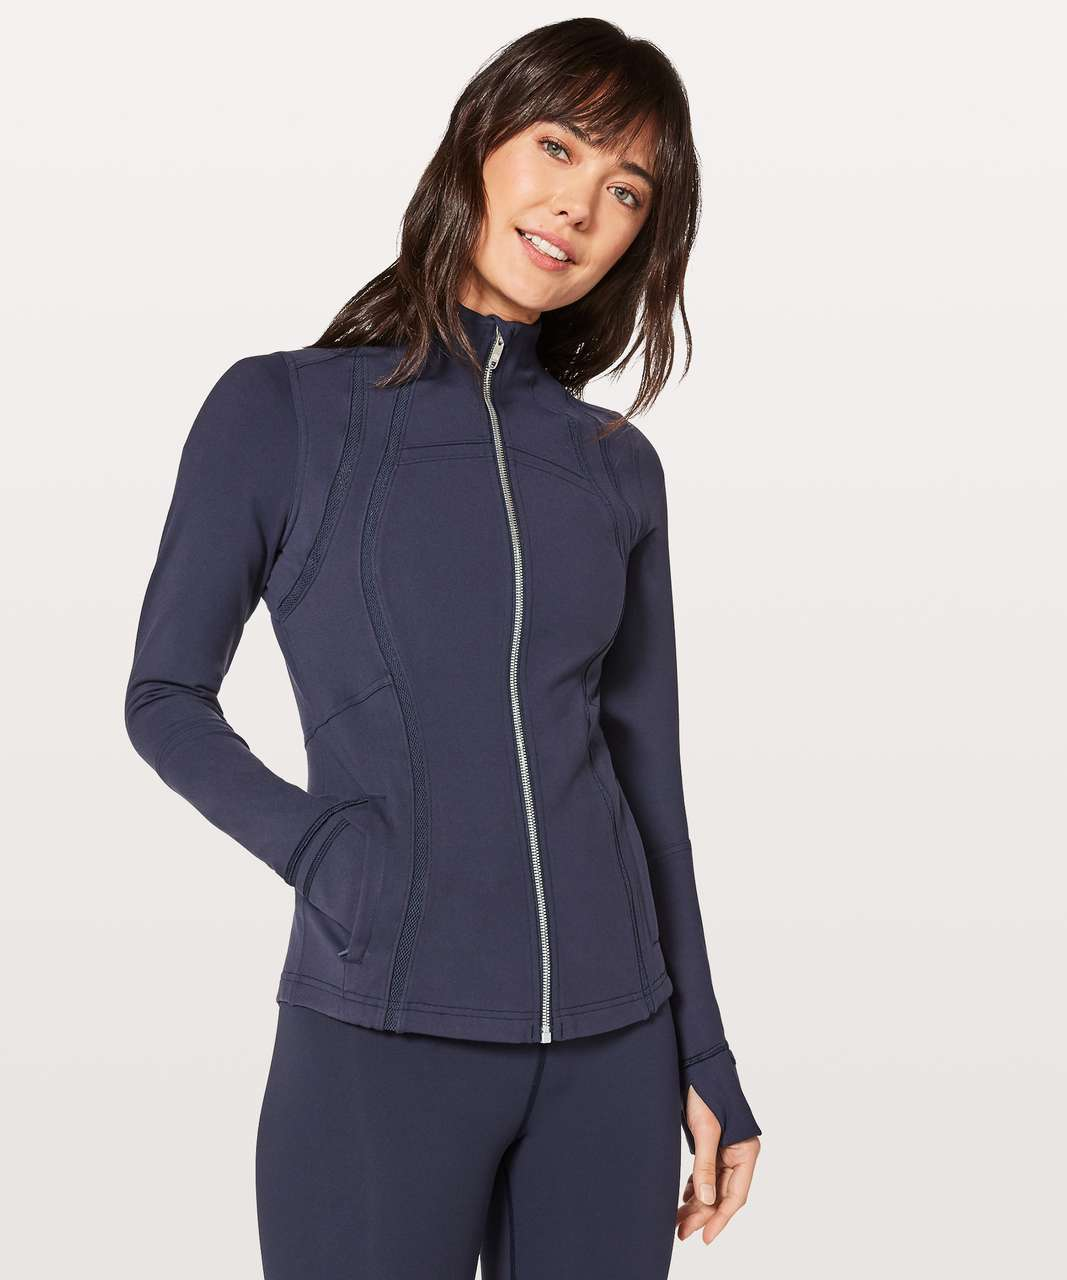 Lululemon Define Jacket Wing Mesh - Midnight Navy